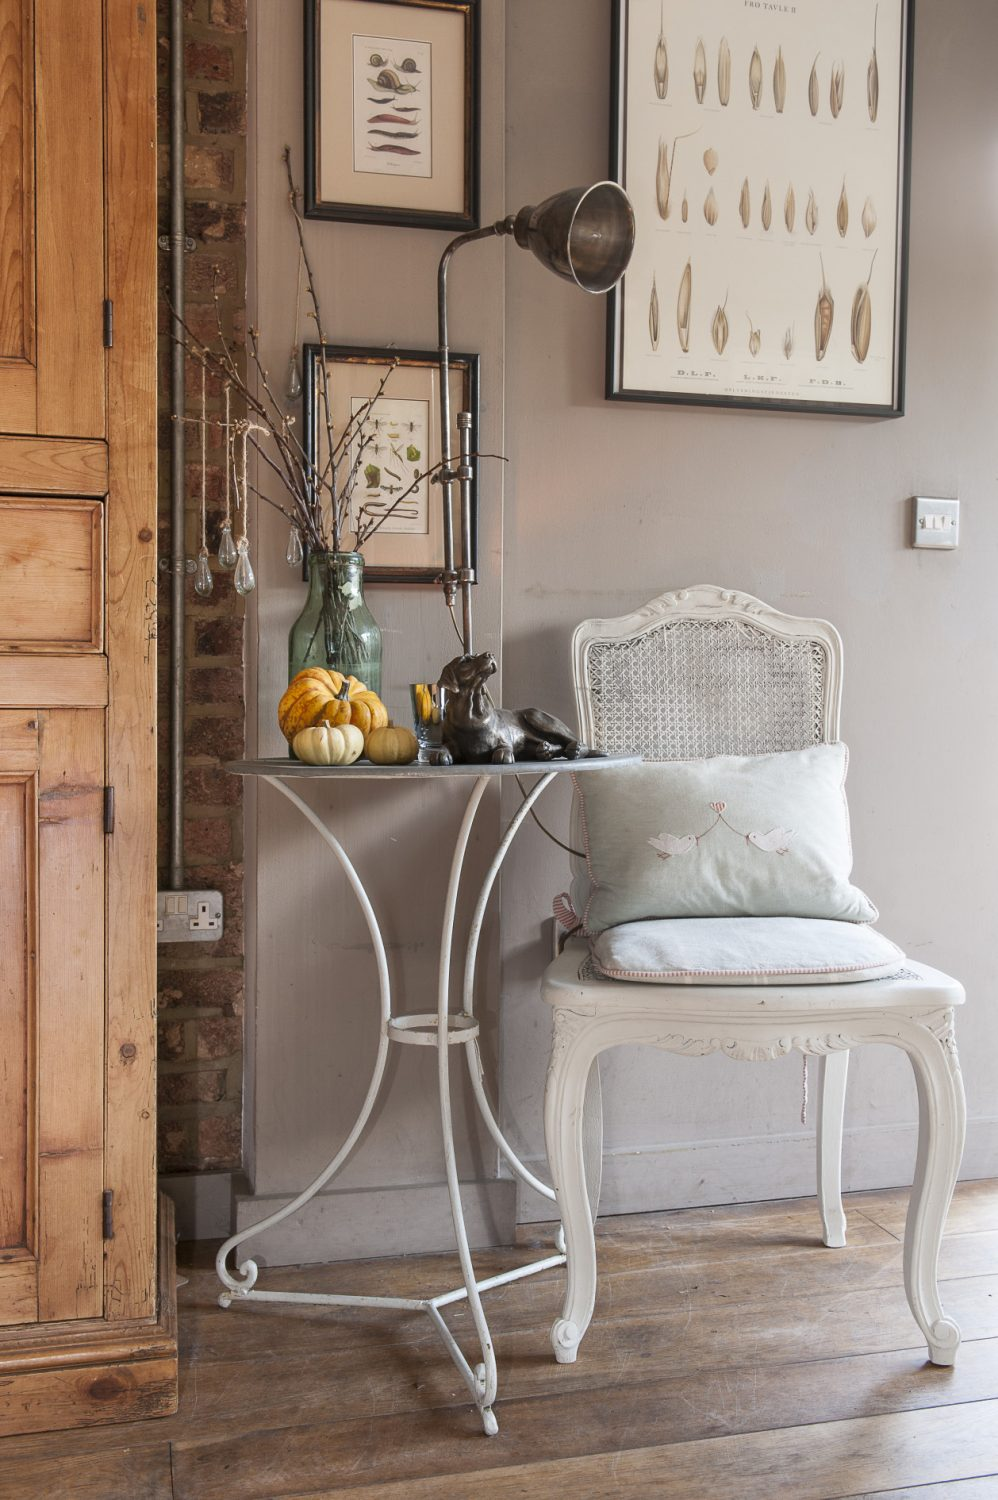 The dining room gathers round a bespoke bleached oak table and an eclectic collection of white-painted and old bare wood chairs